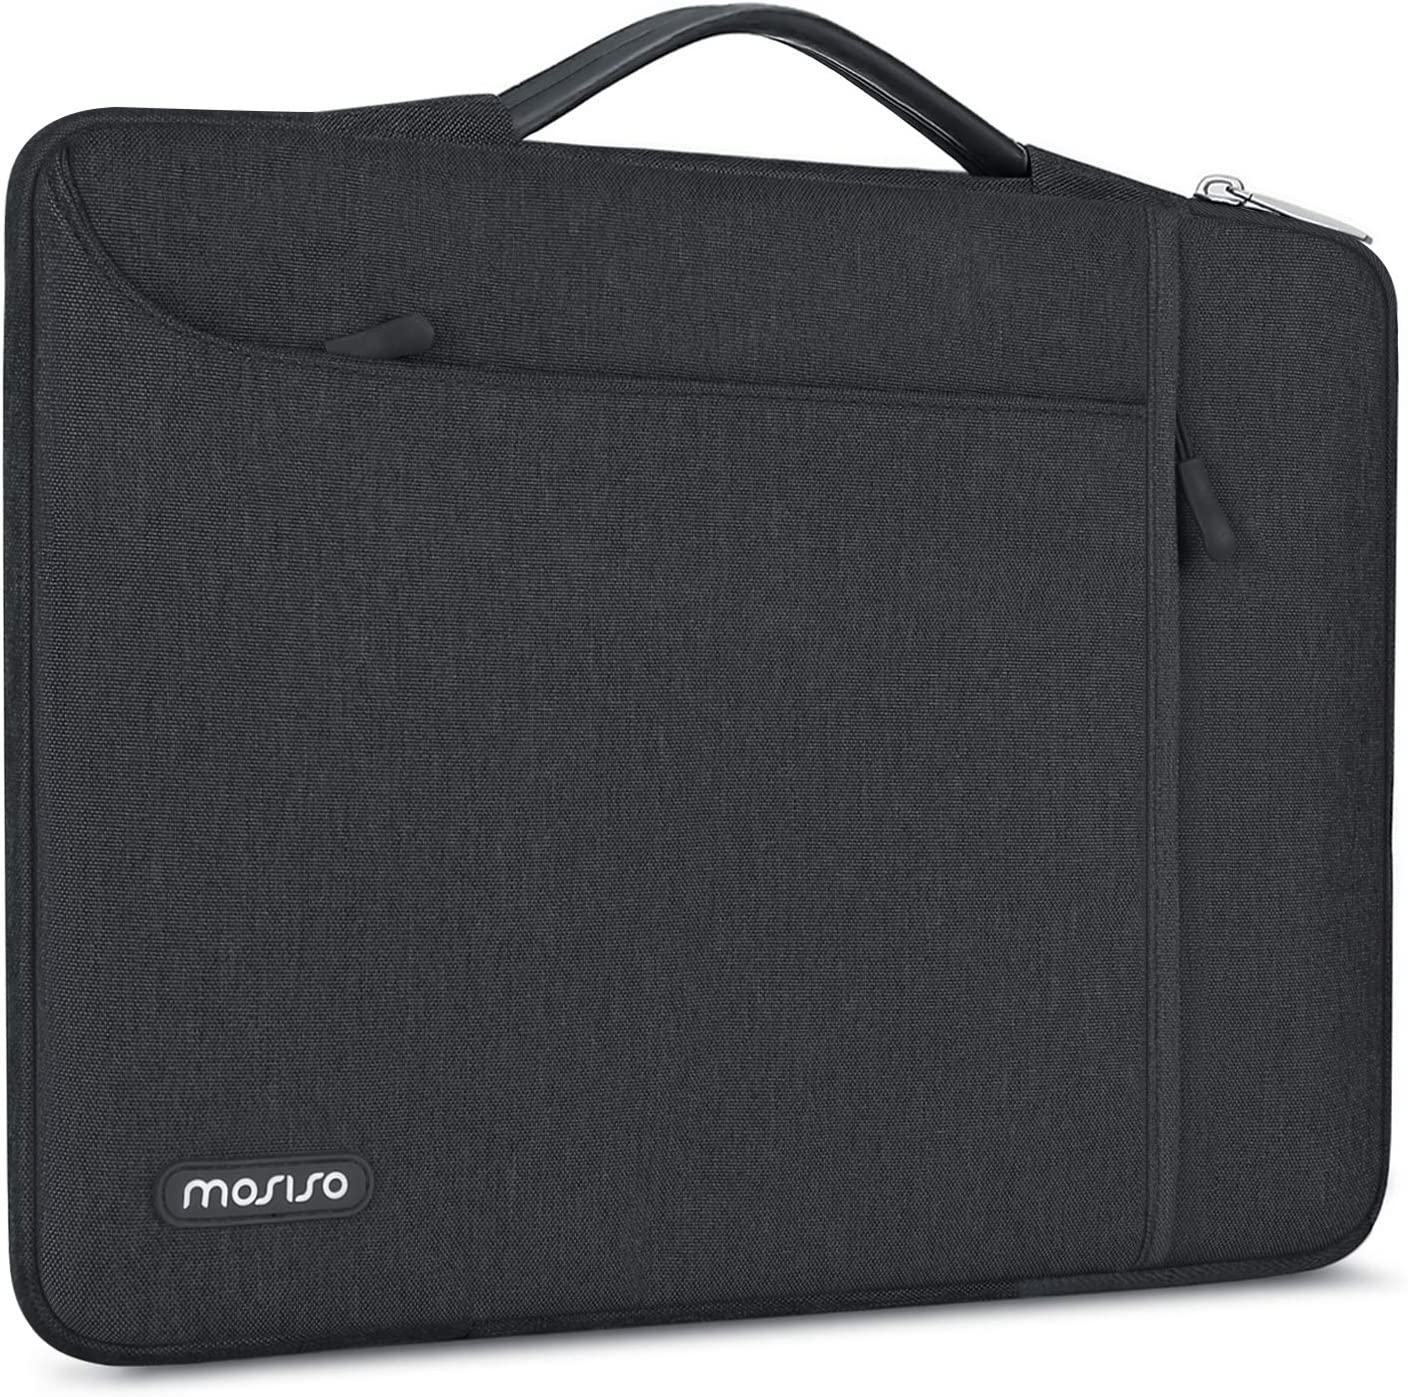 MOSISO 360 Protective Laptop Sleeve Compatible with 13-13.3 inch MacBook Pro, MacBook Air, Notebook, Shockproof Carrying Case Cover Handbag, Polyester Bag with Pockets & Back Trolley Belt, Space Gray